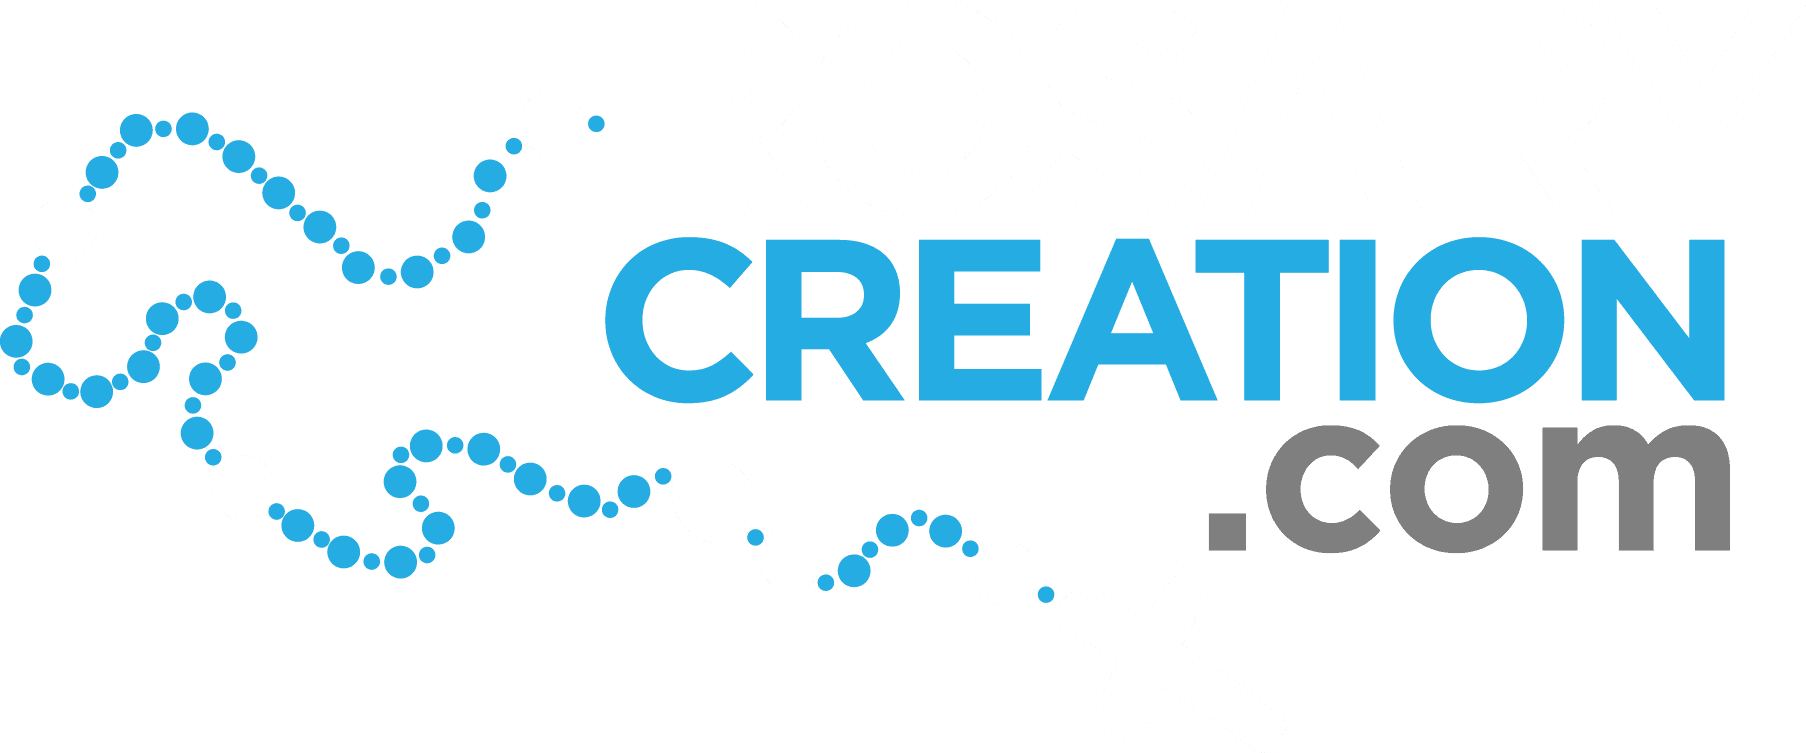 RosaryCreation.com